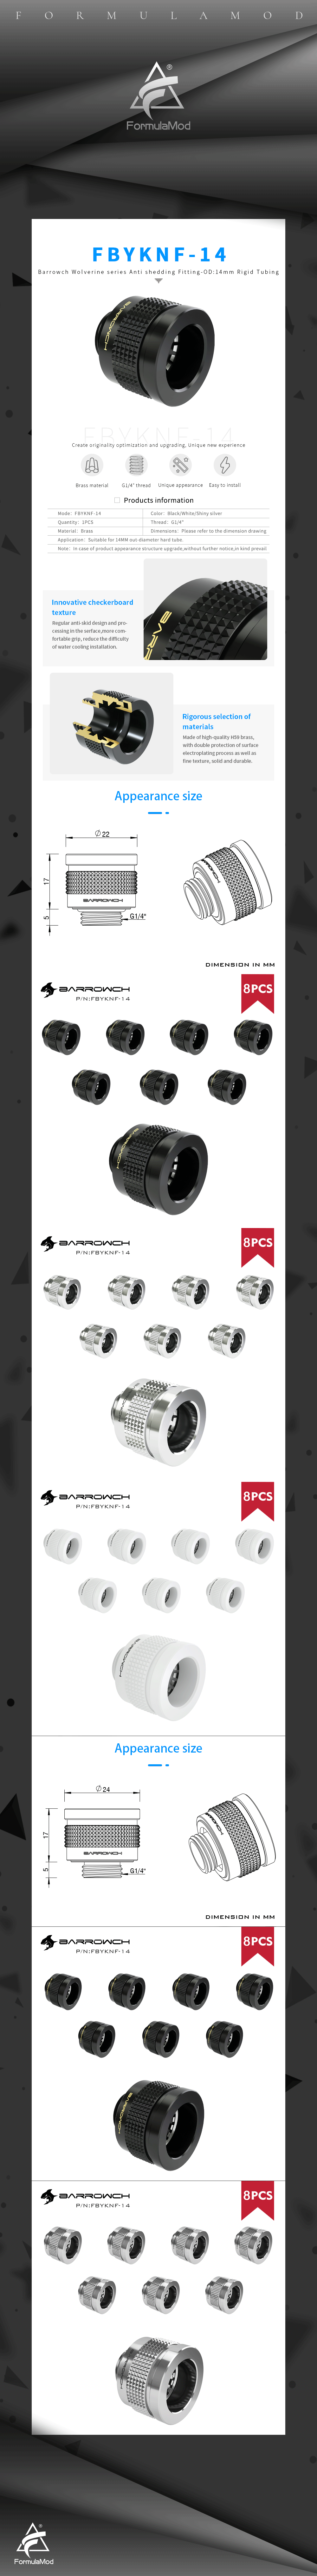 Barrow Hard Tube Fittings, 8pcs, Wolverine series Enhanced Anti-off Fitting, For OD14/16mm Hard Tubes, 8pcs/lot, FBYKNF